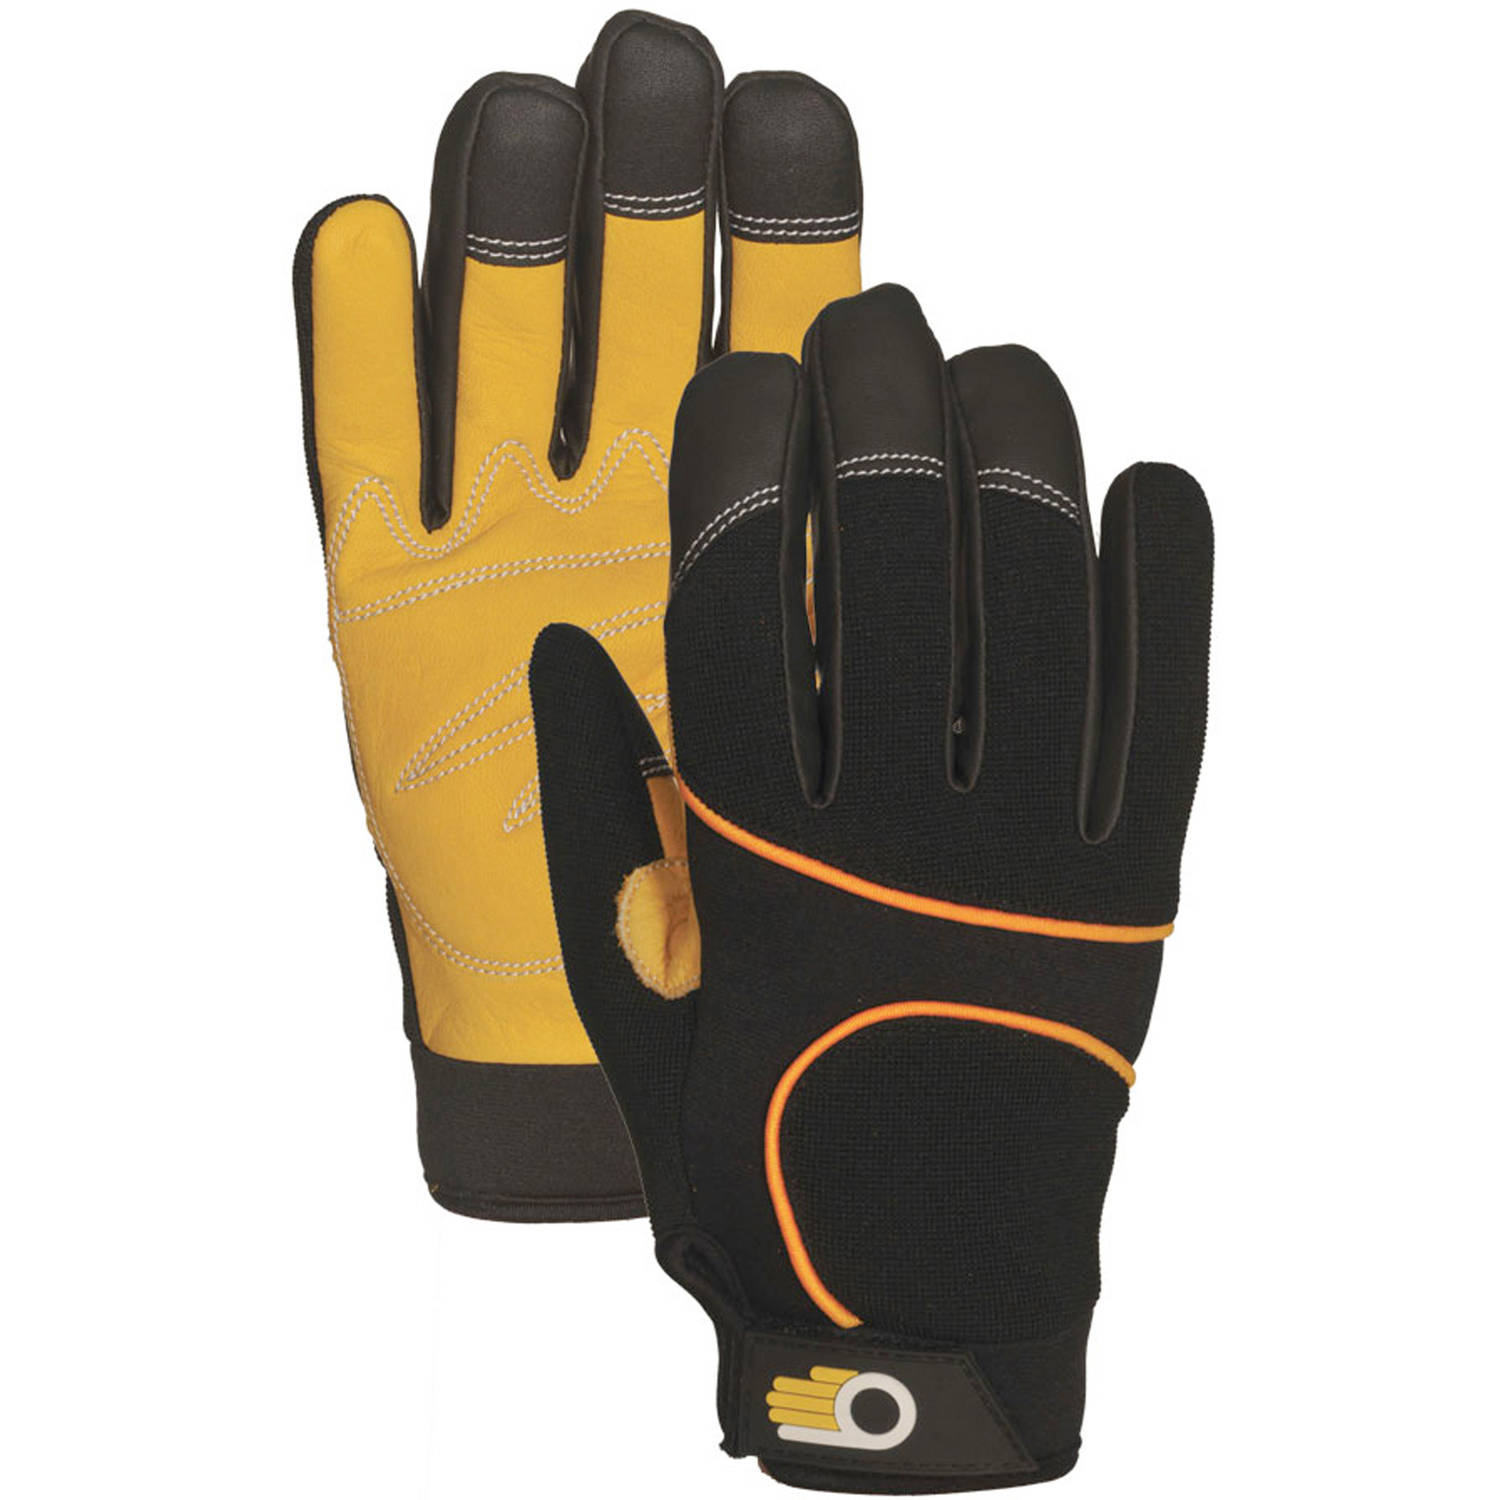 Bellingham Glove C7780M Medium Performance Cowhide Palm Glove